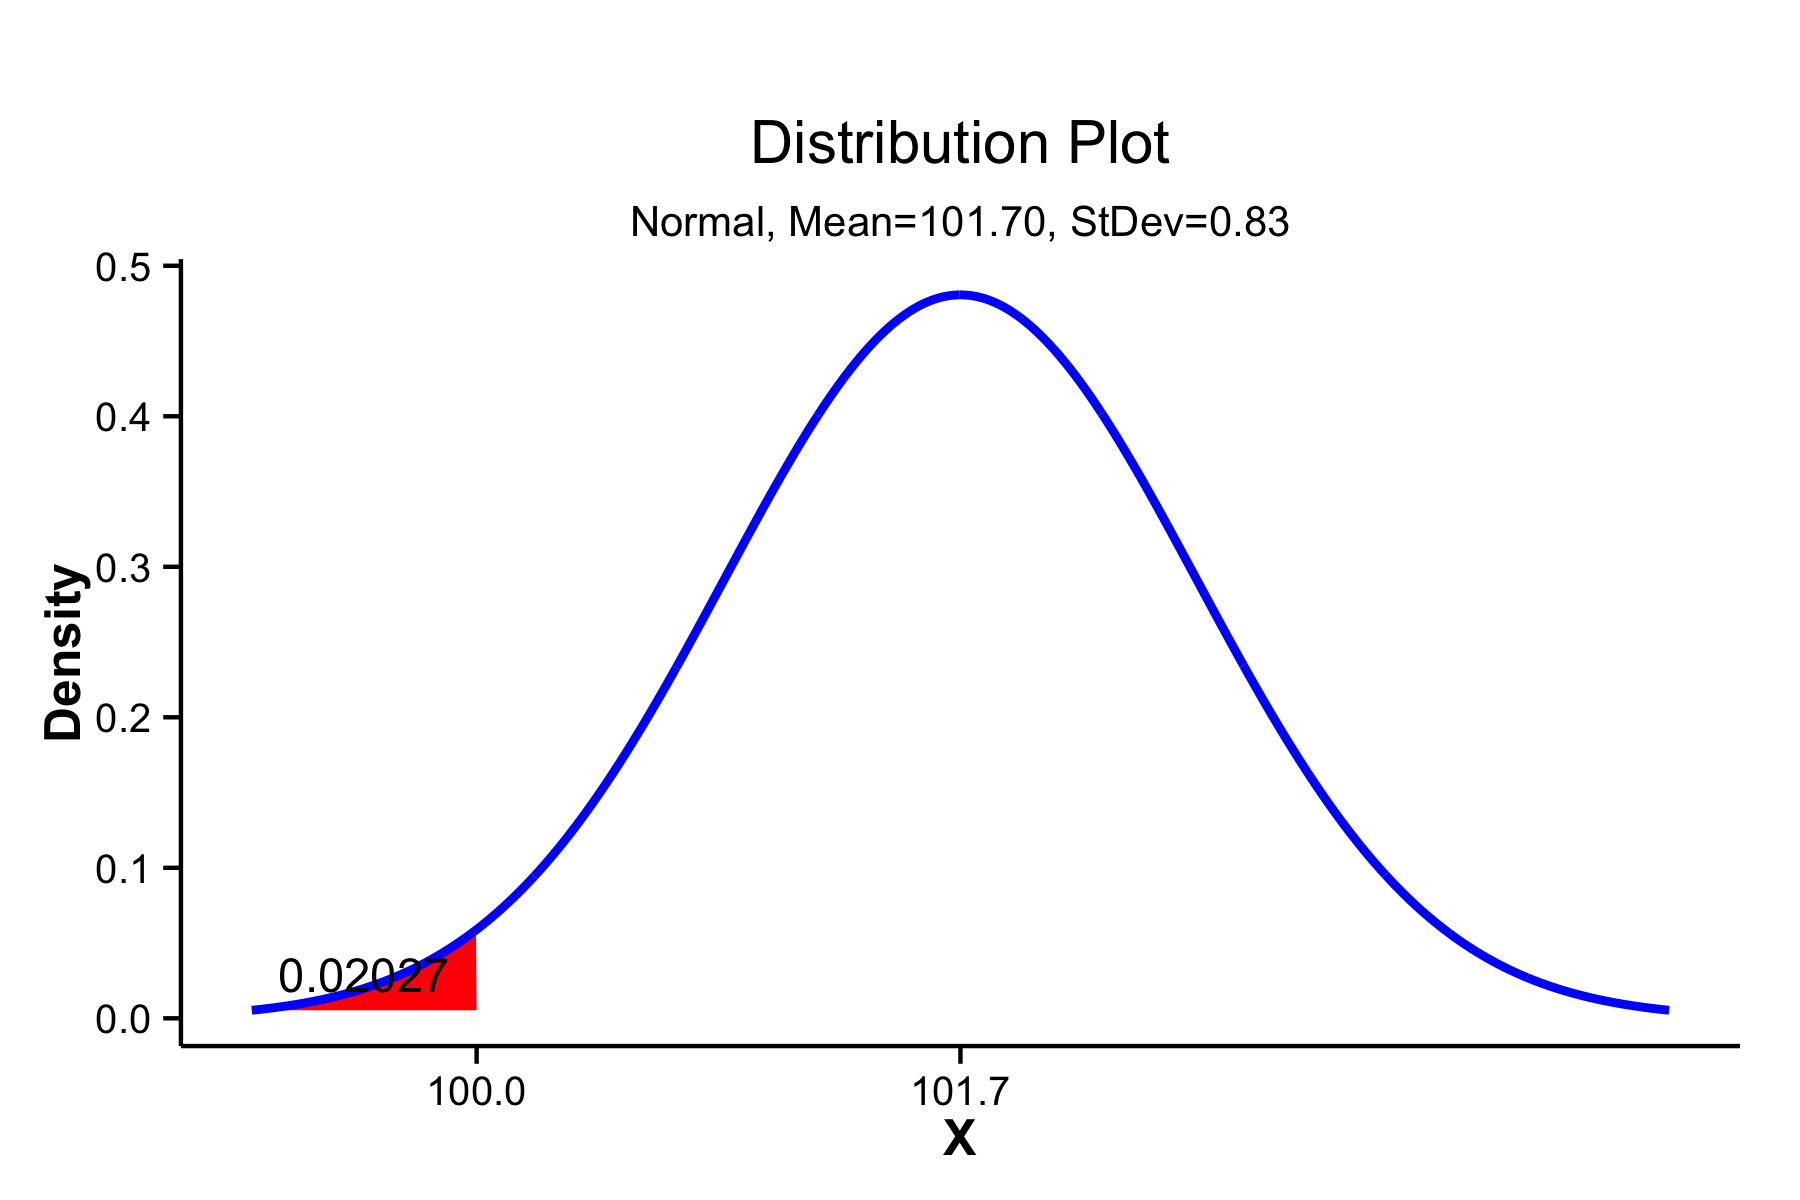 Probability density distribution showing cumulative probability below a target value of 100 shaded in red.